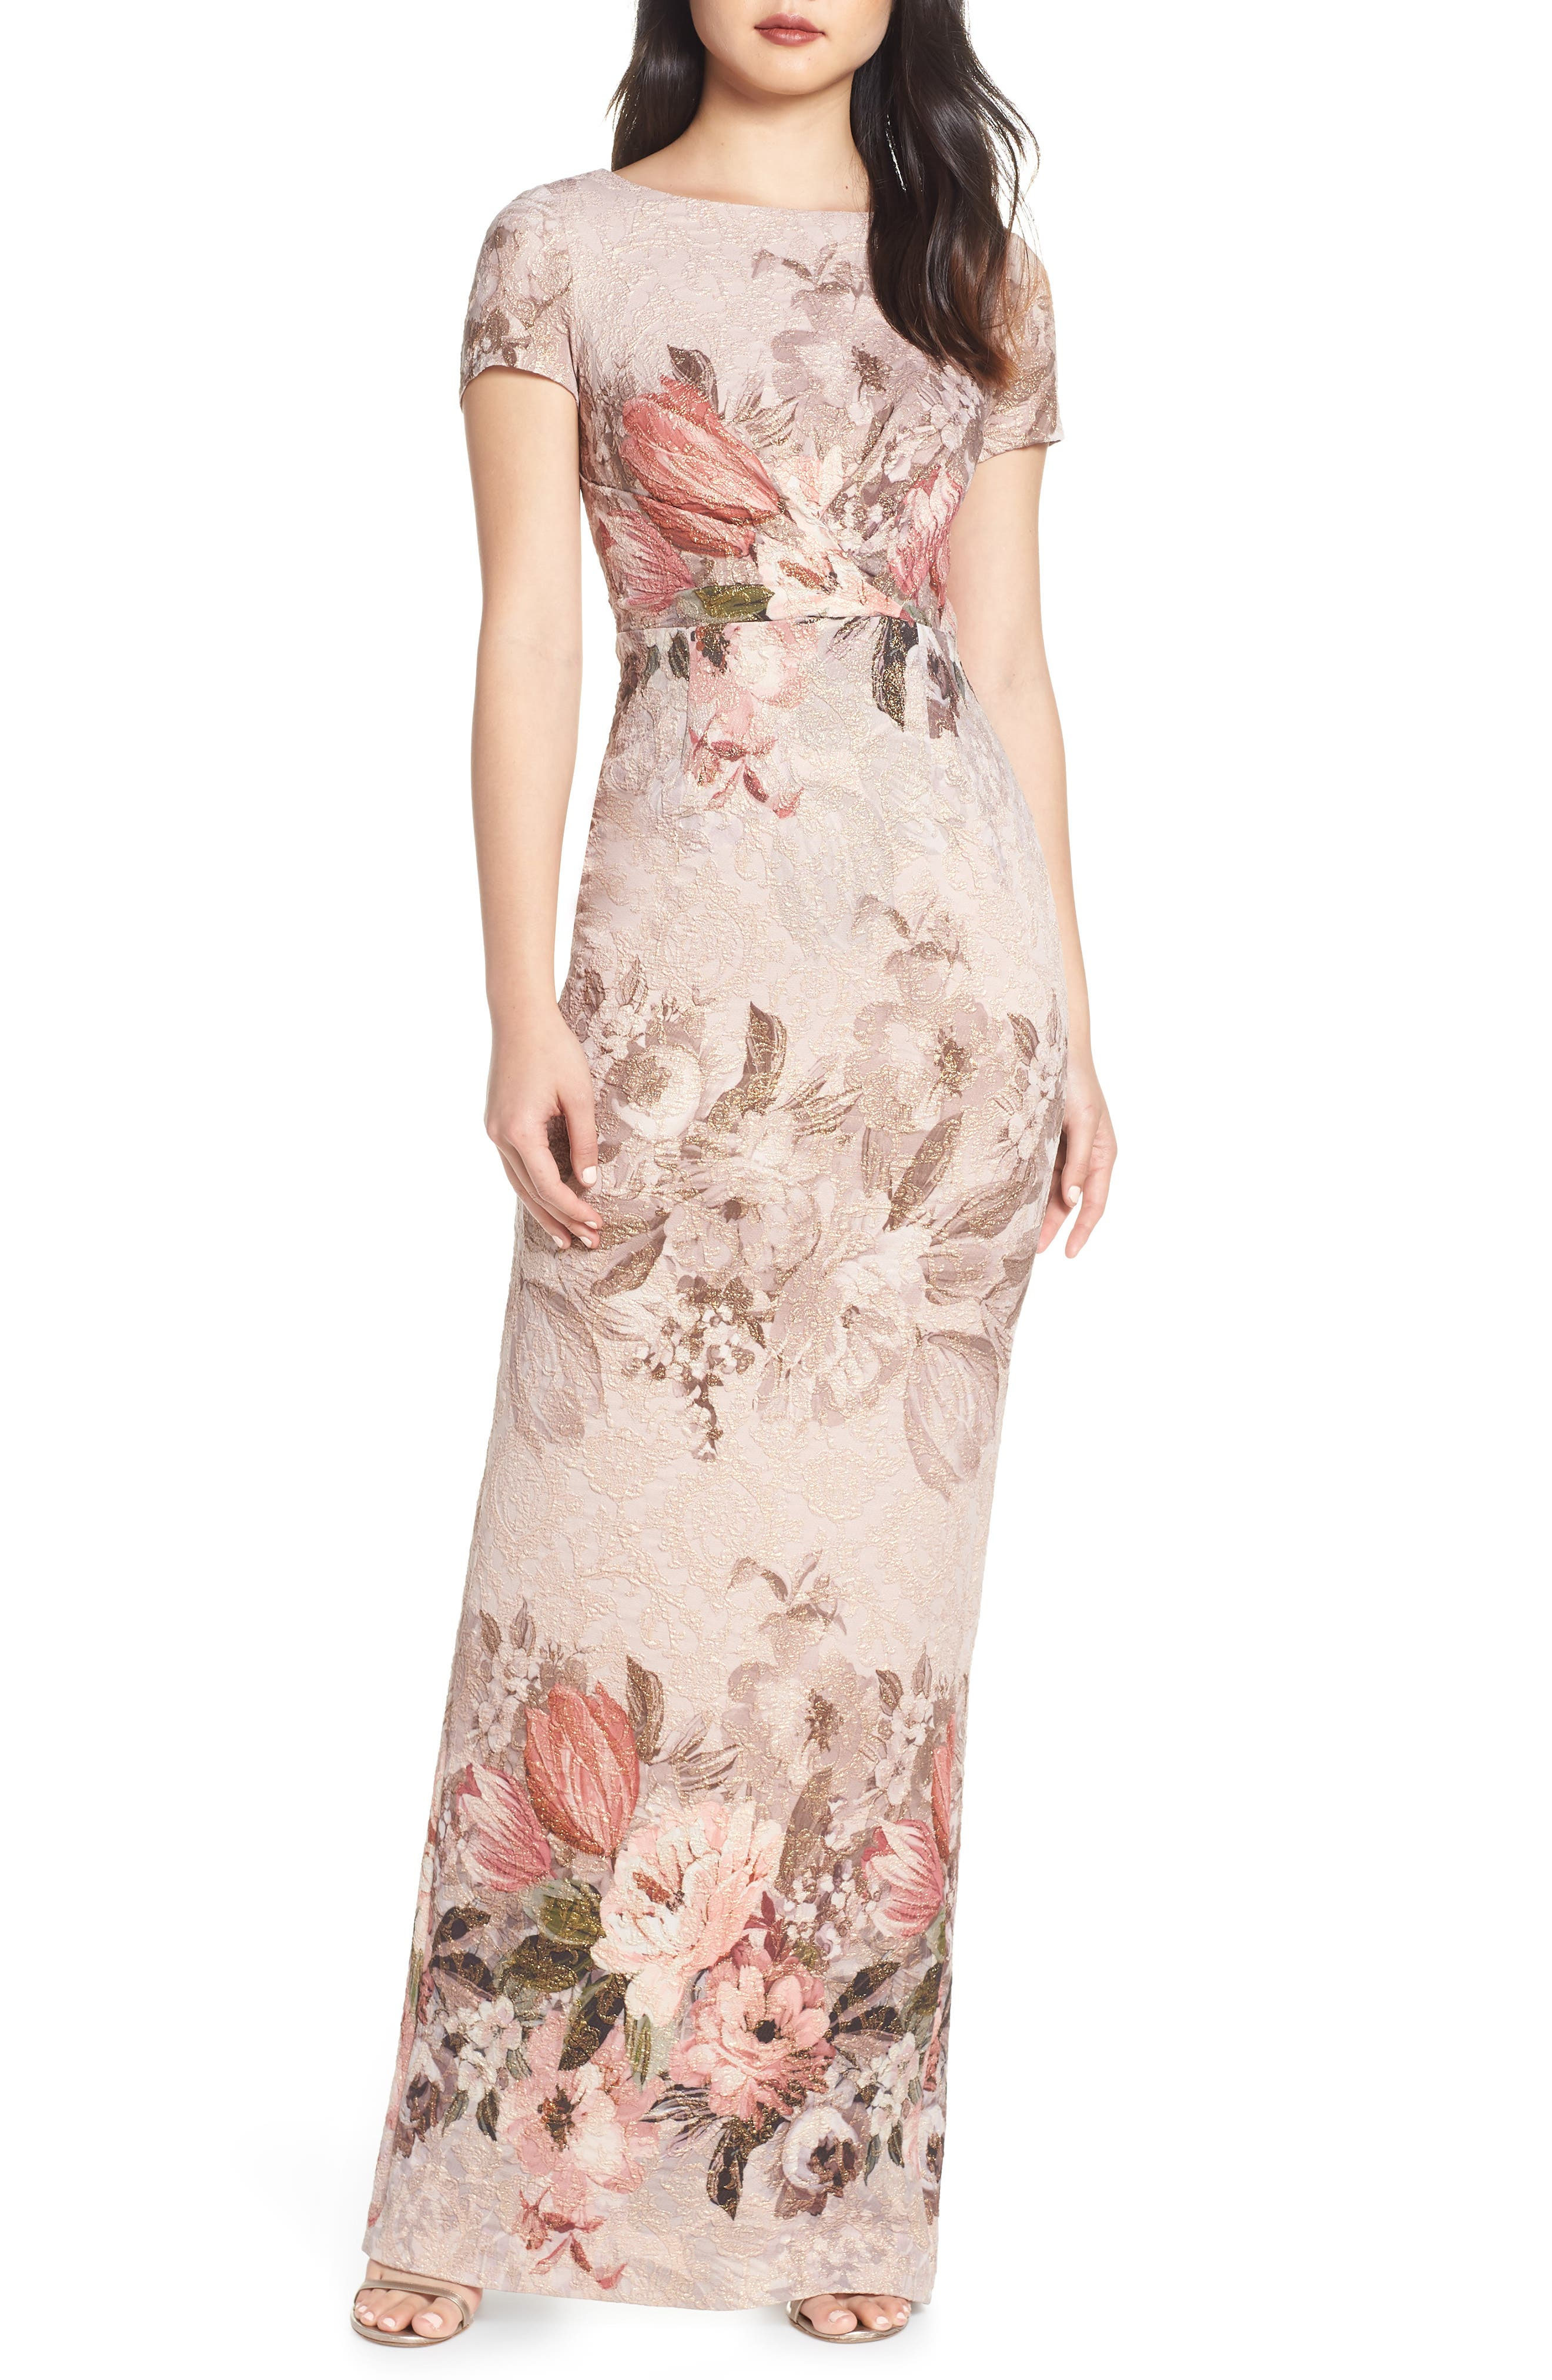 Adrianna Papell Floral Border Print Evening Dress, Pink